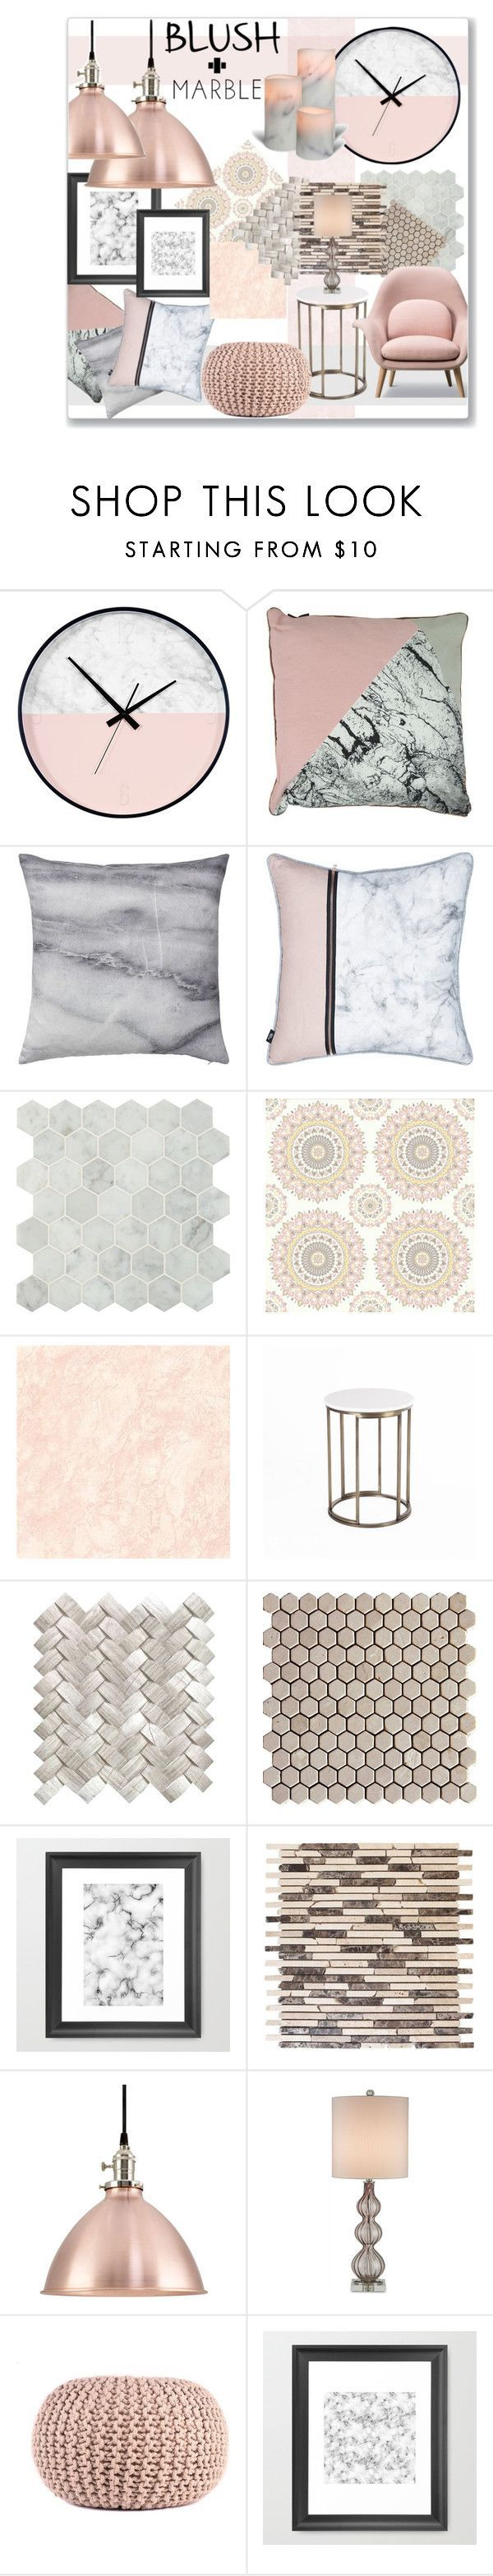 """SOFT and Sleek"" by jckallan on Polyvore featuring interior, interiors, interior design, home, home decor, interior decorating, Bloomingville, Brewster Home Fashions, Currey & Company and homedecor"